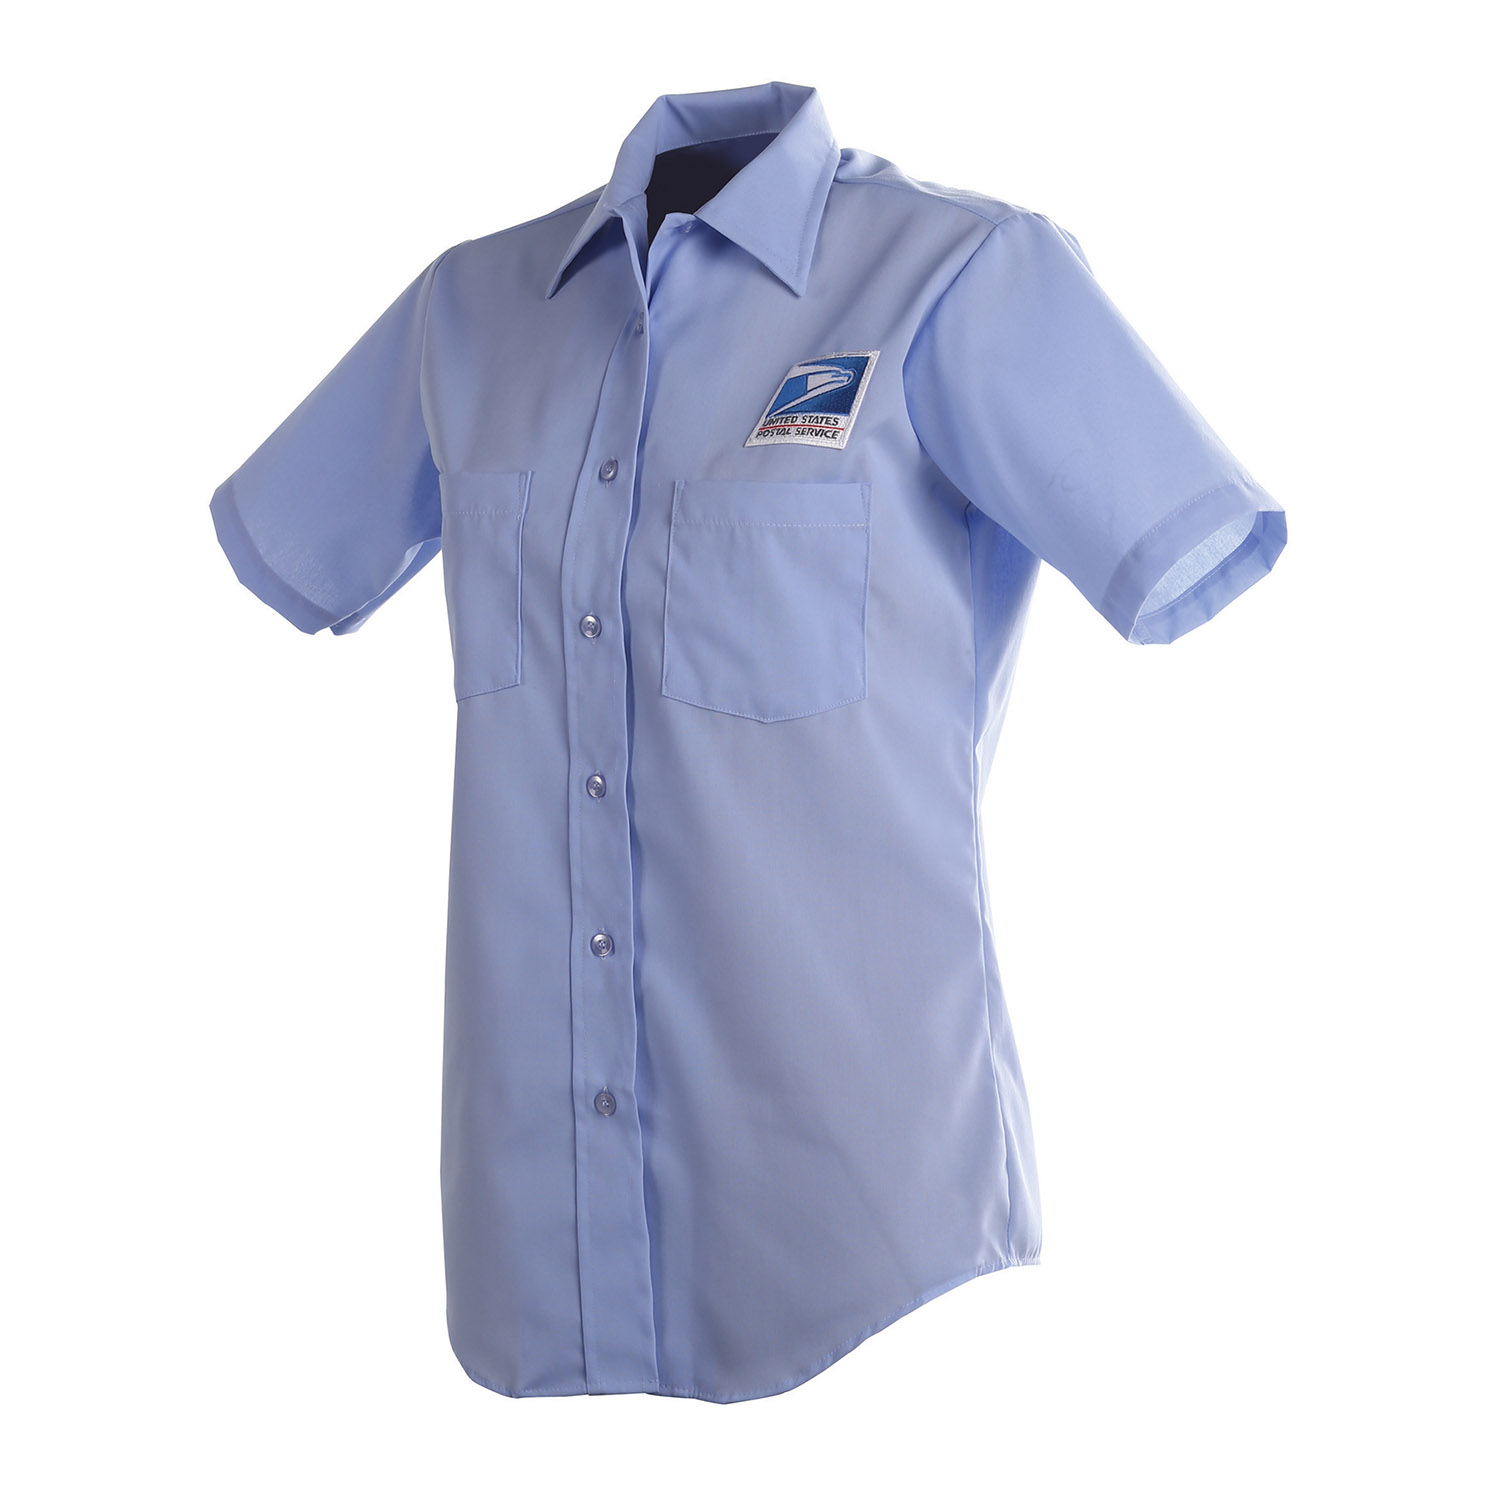 Postal Uniform Shirt Womens Short Sleeve For Letter Carriers